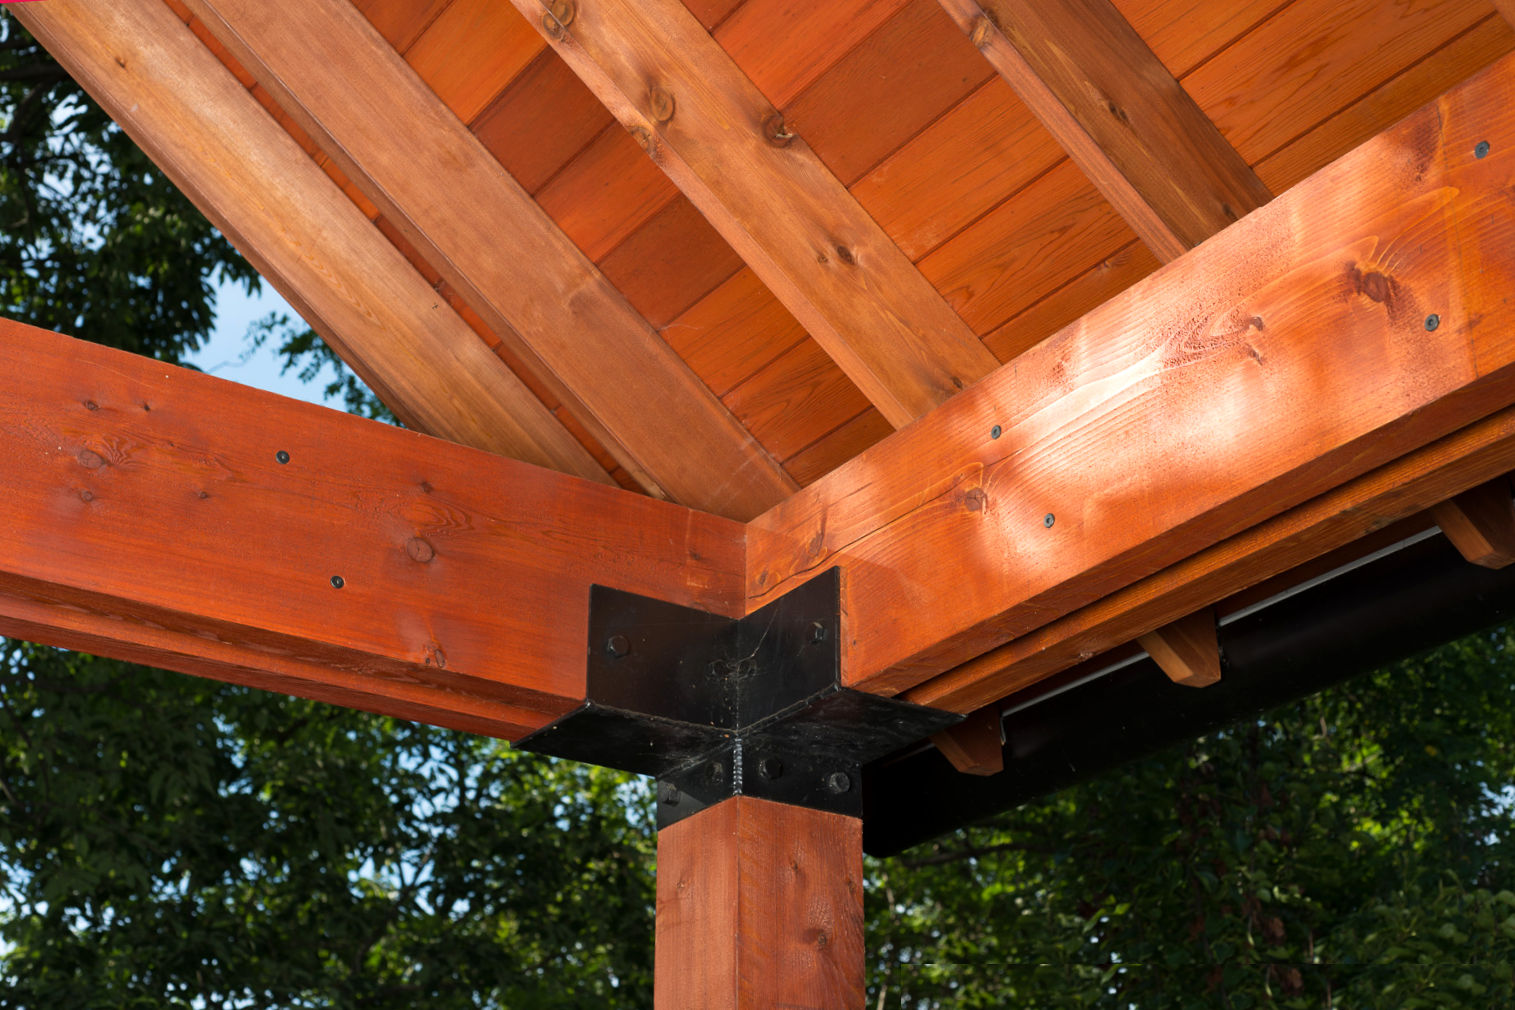 CEDAR LUMBER 3X6 CEDAR BEAMS supported by 6X6 CEDAR POSTS - TIMBER FRAME ACCENT TO CEDAR SIDED HOME IN NJ